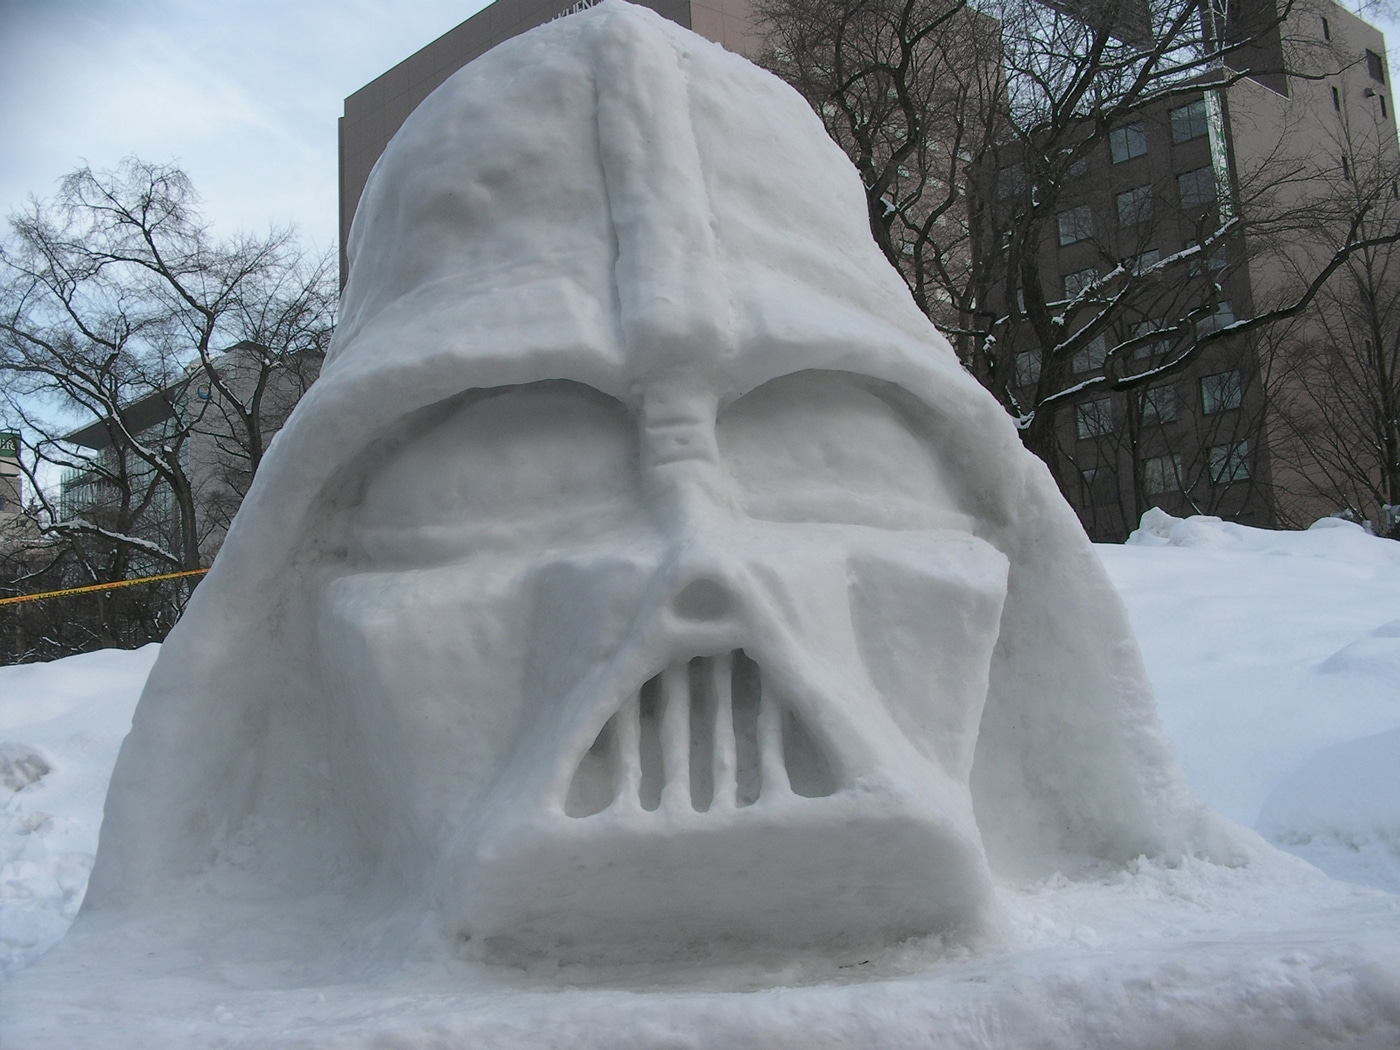 star-wars-snow-sculptures